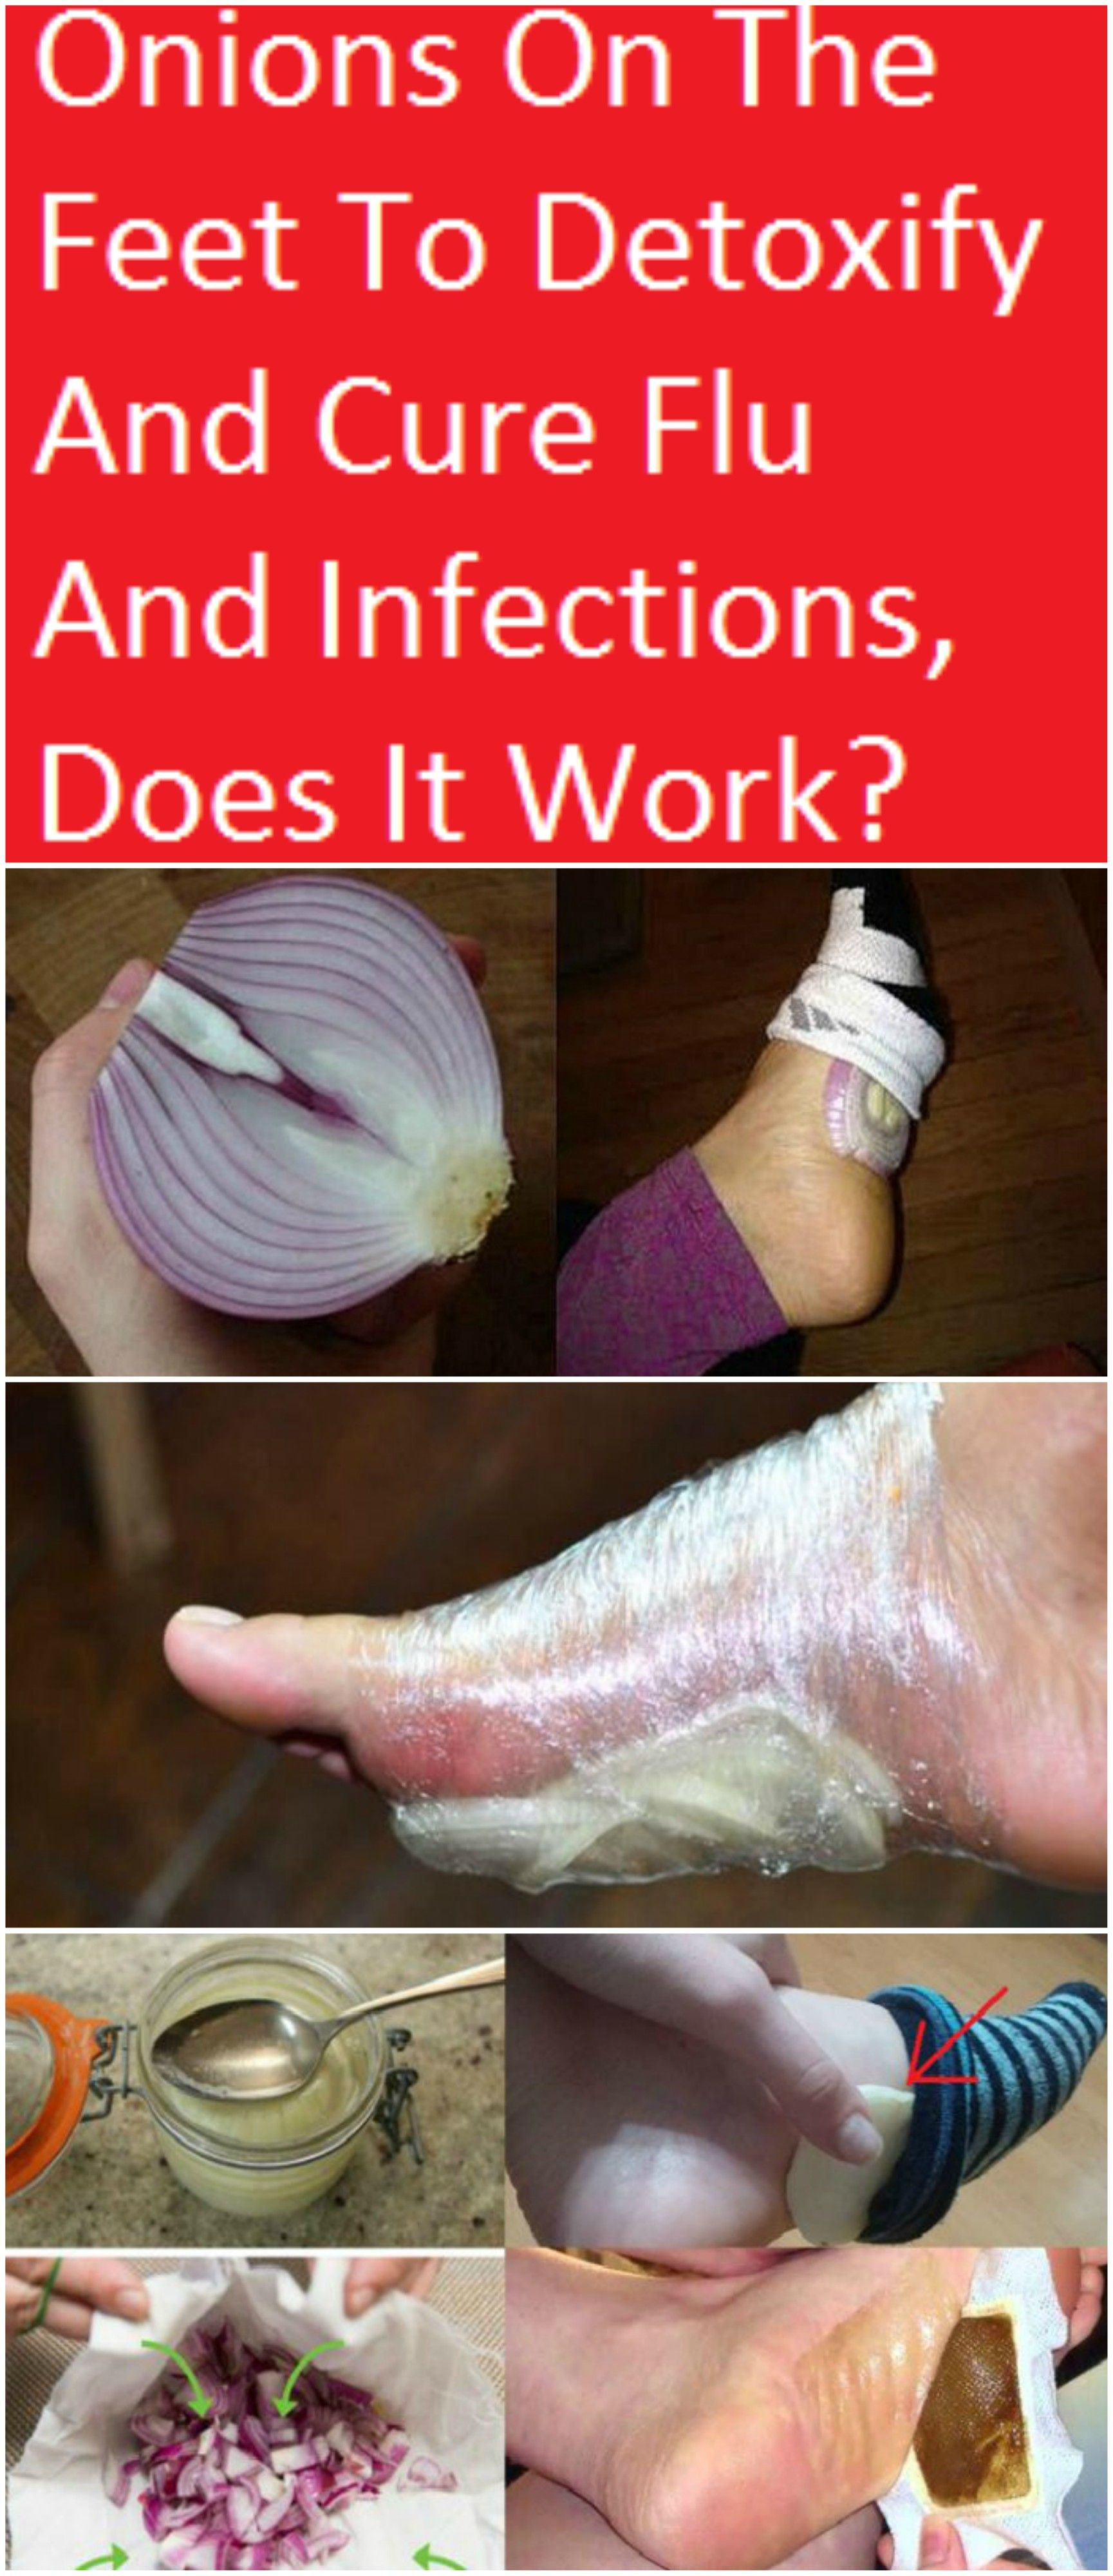 Many people put onions on their feet or in their socks to help get